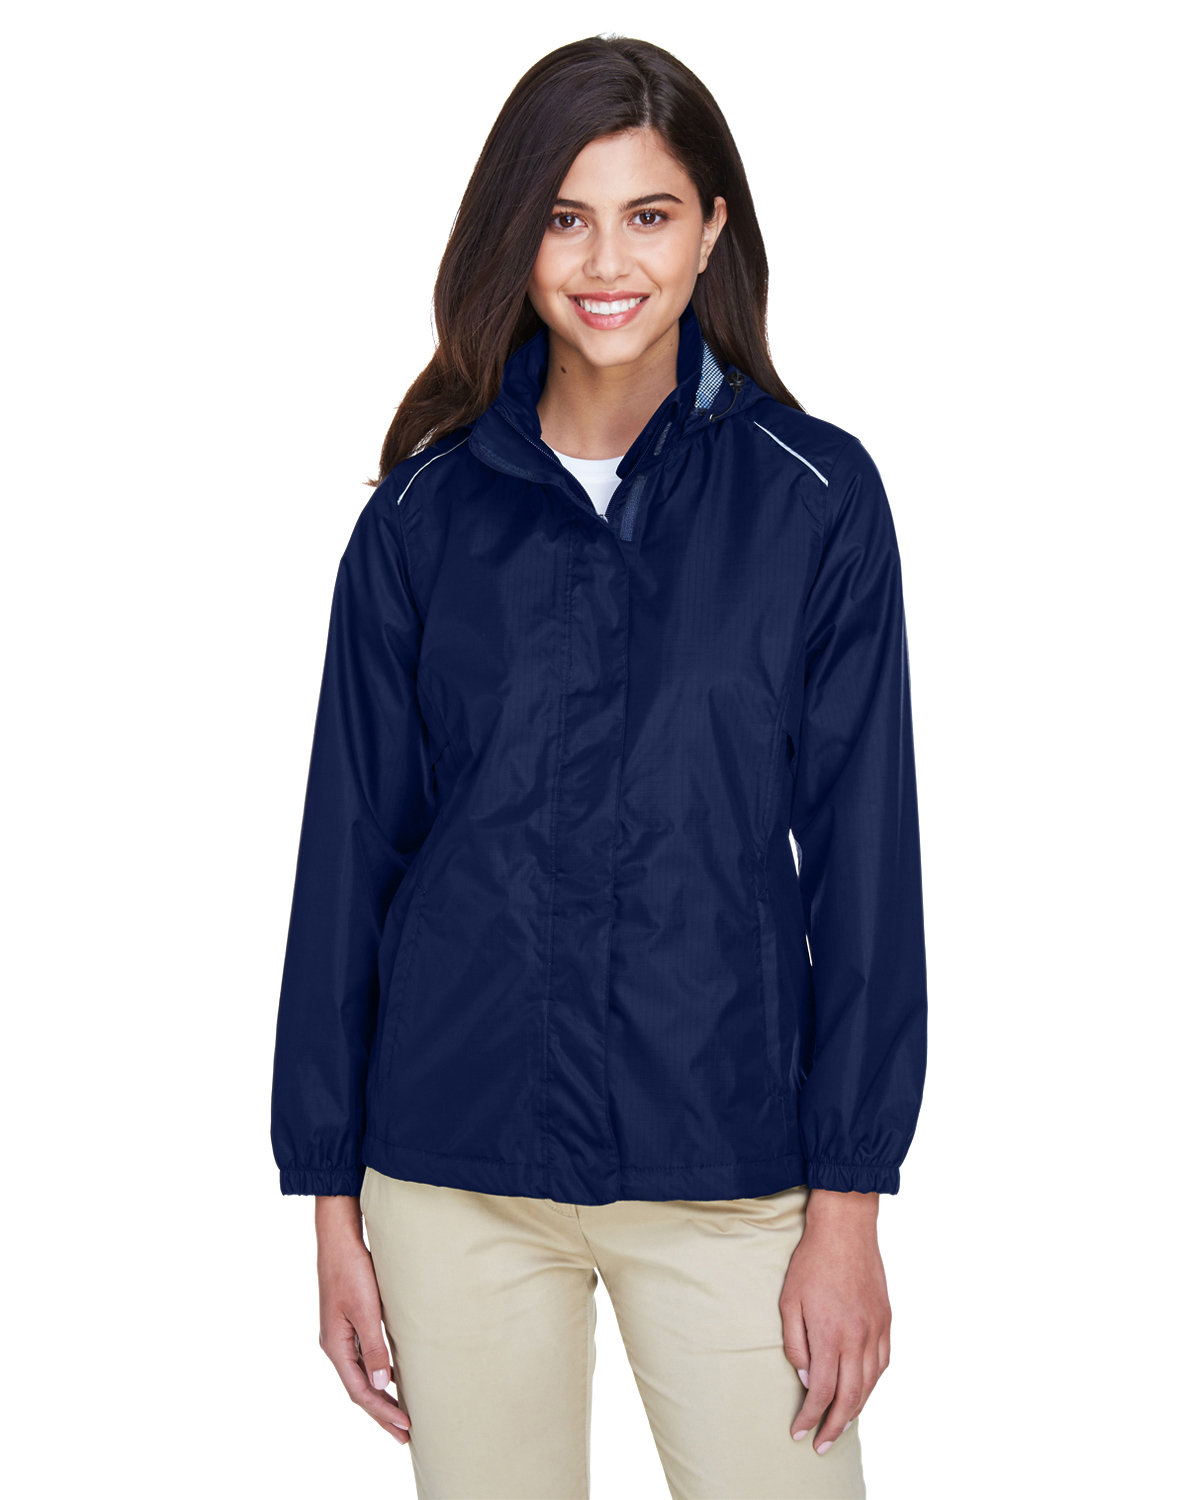 Core 365 Ladies' Climate Seam-Sealed Lightweight Variegated Ripstop Jacket CLASSIC NAVY